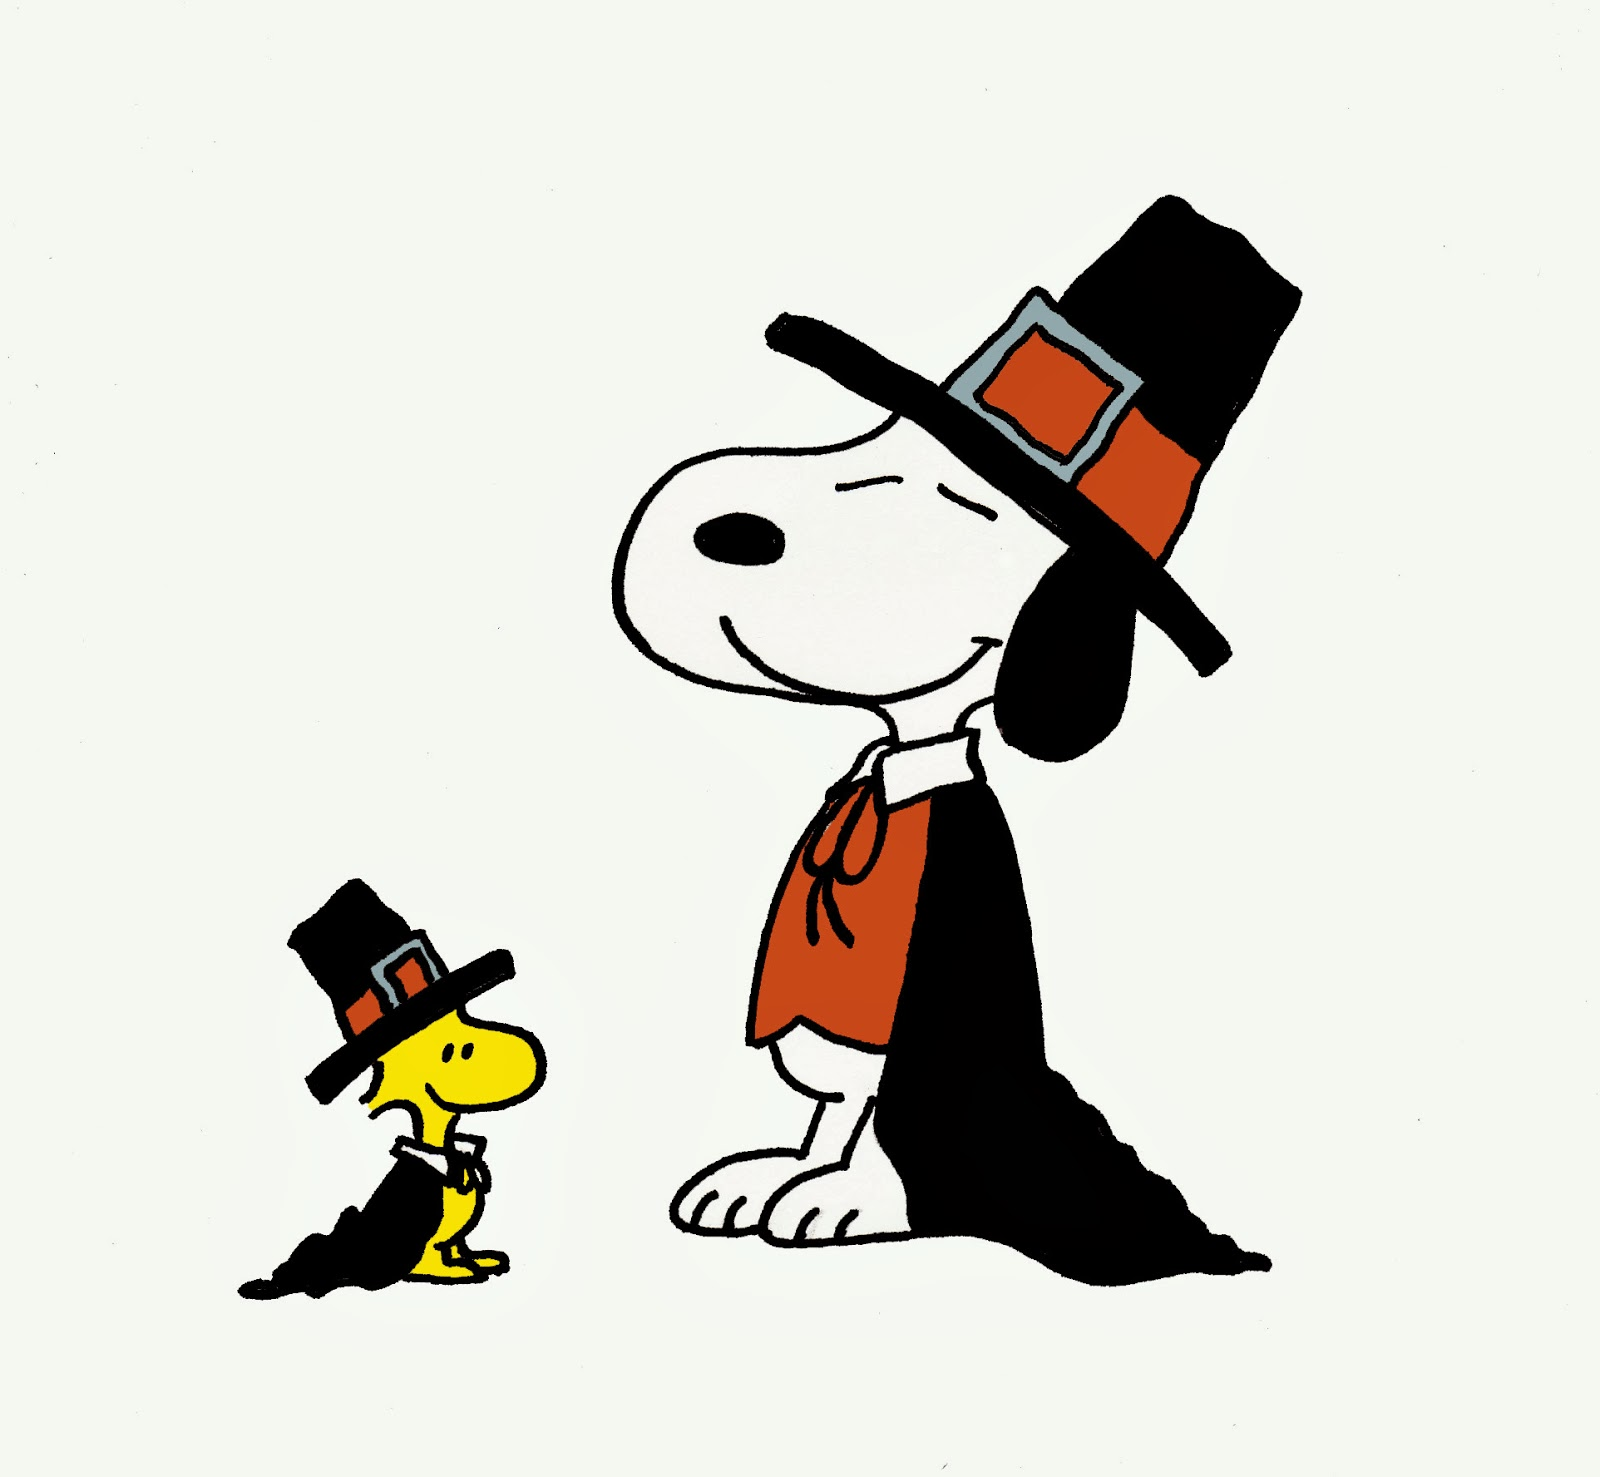 Snoopy And Woodstock From A Charlie Brown Thanksgiving